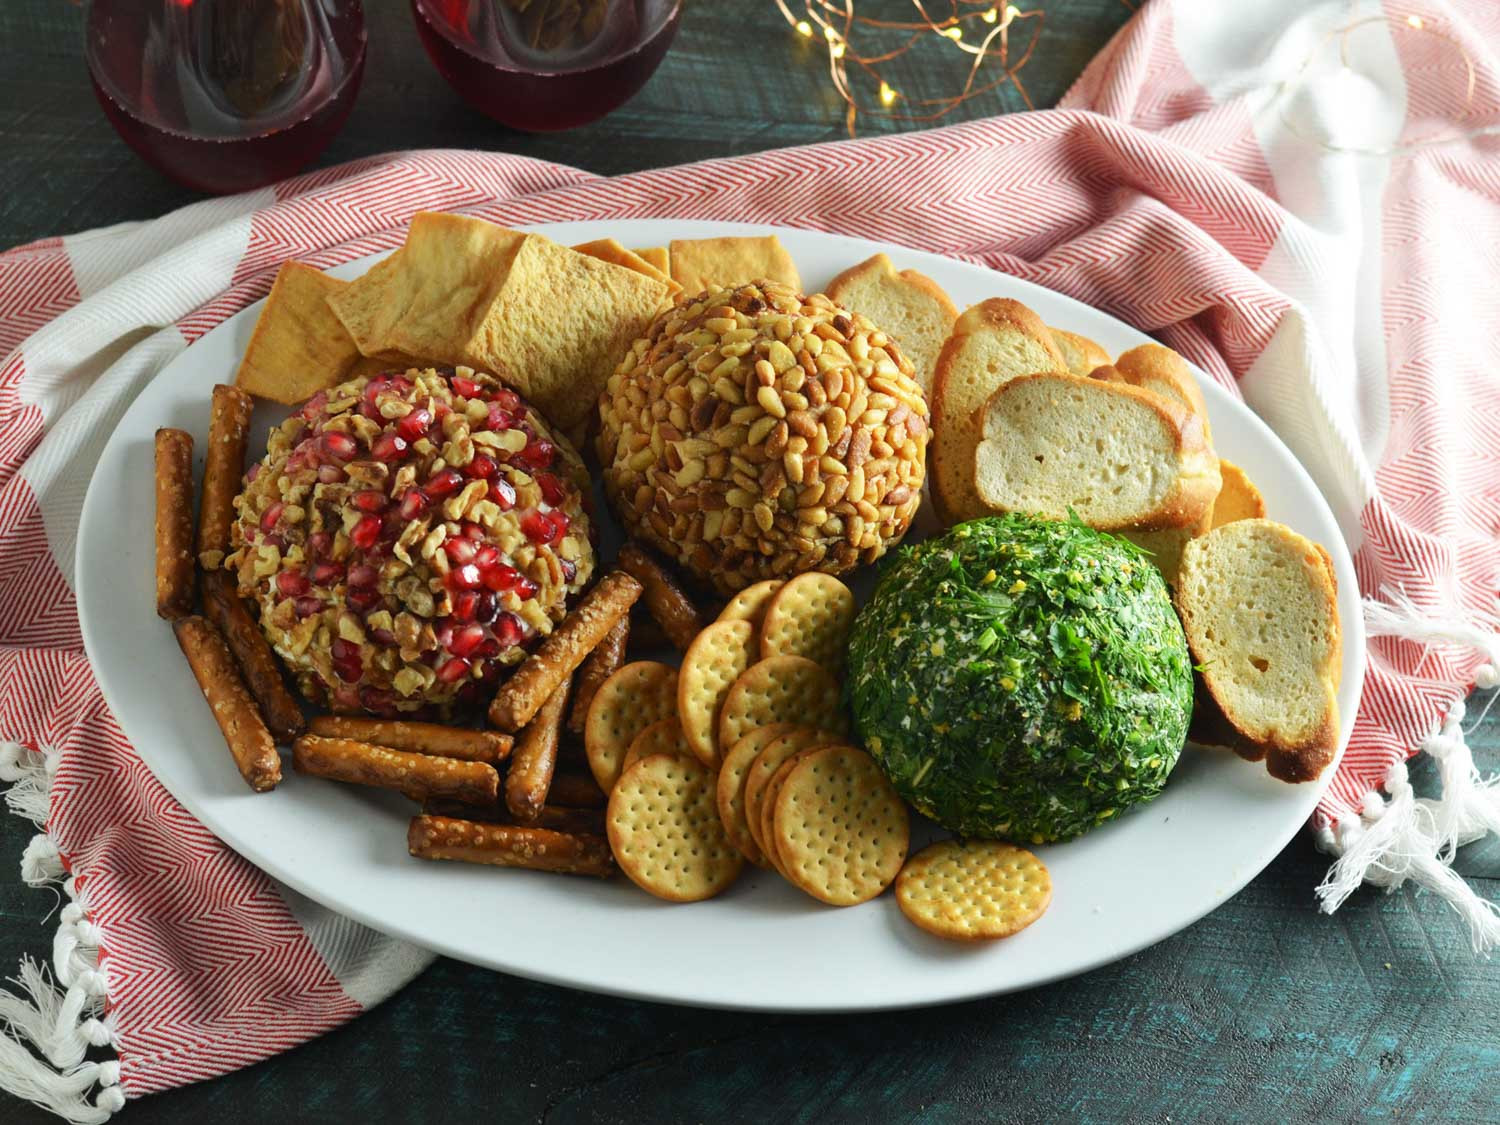 Appetizers For Christmas Party  17 Elegant Appetizer Recipes for a Holiday Cocktail Party